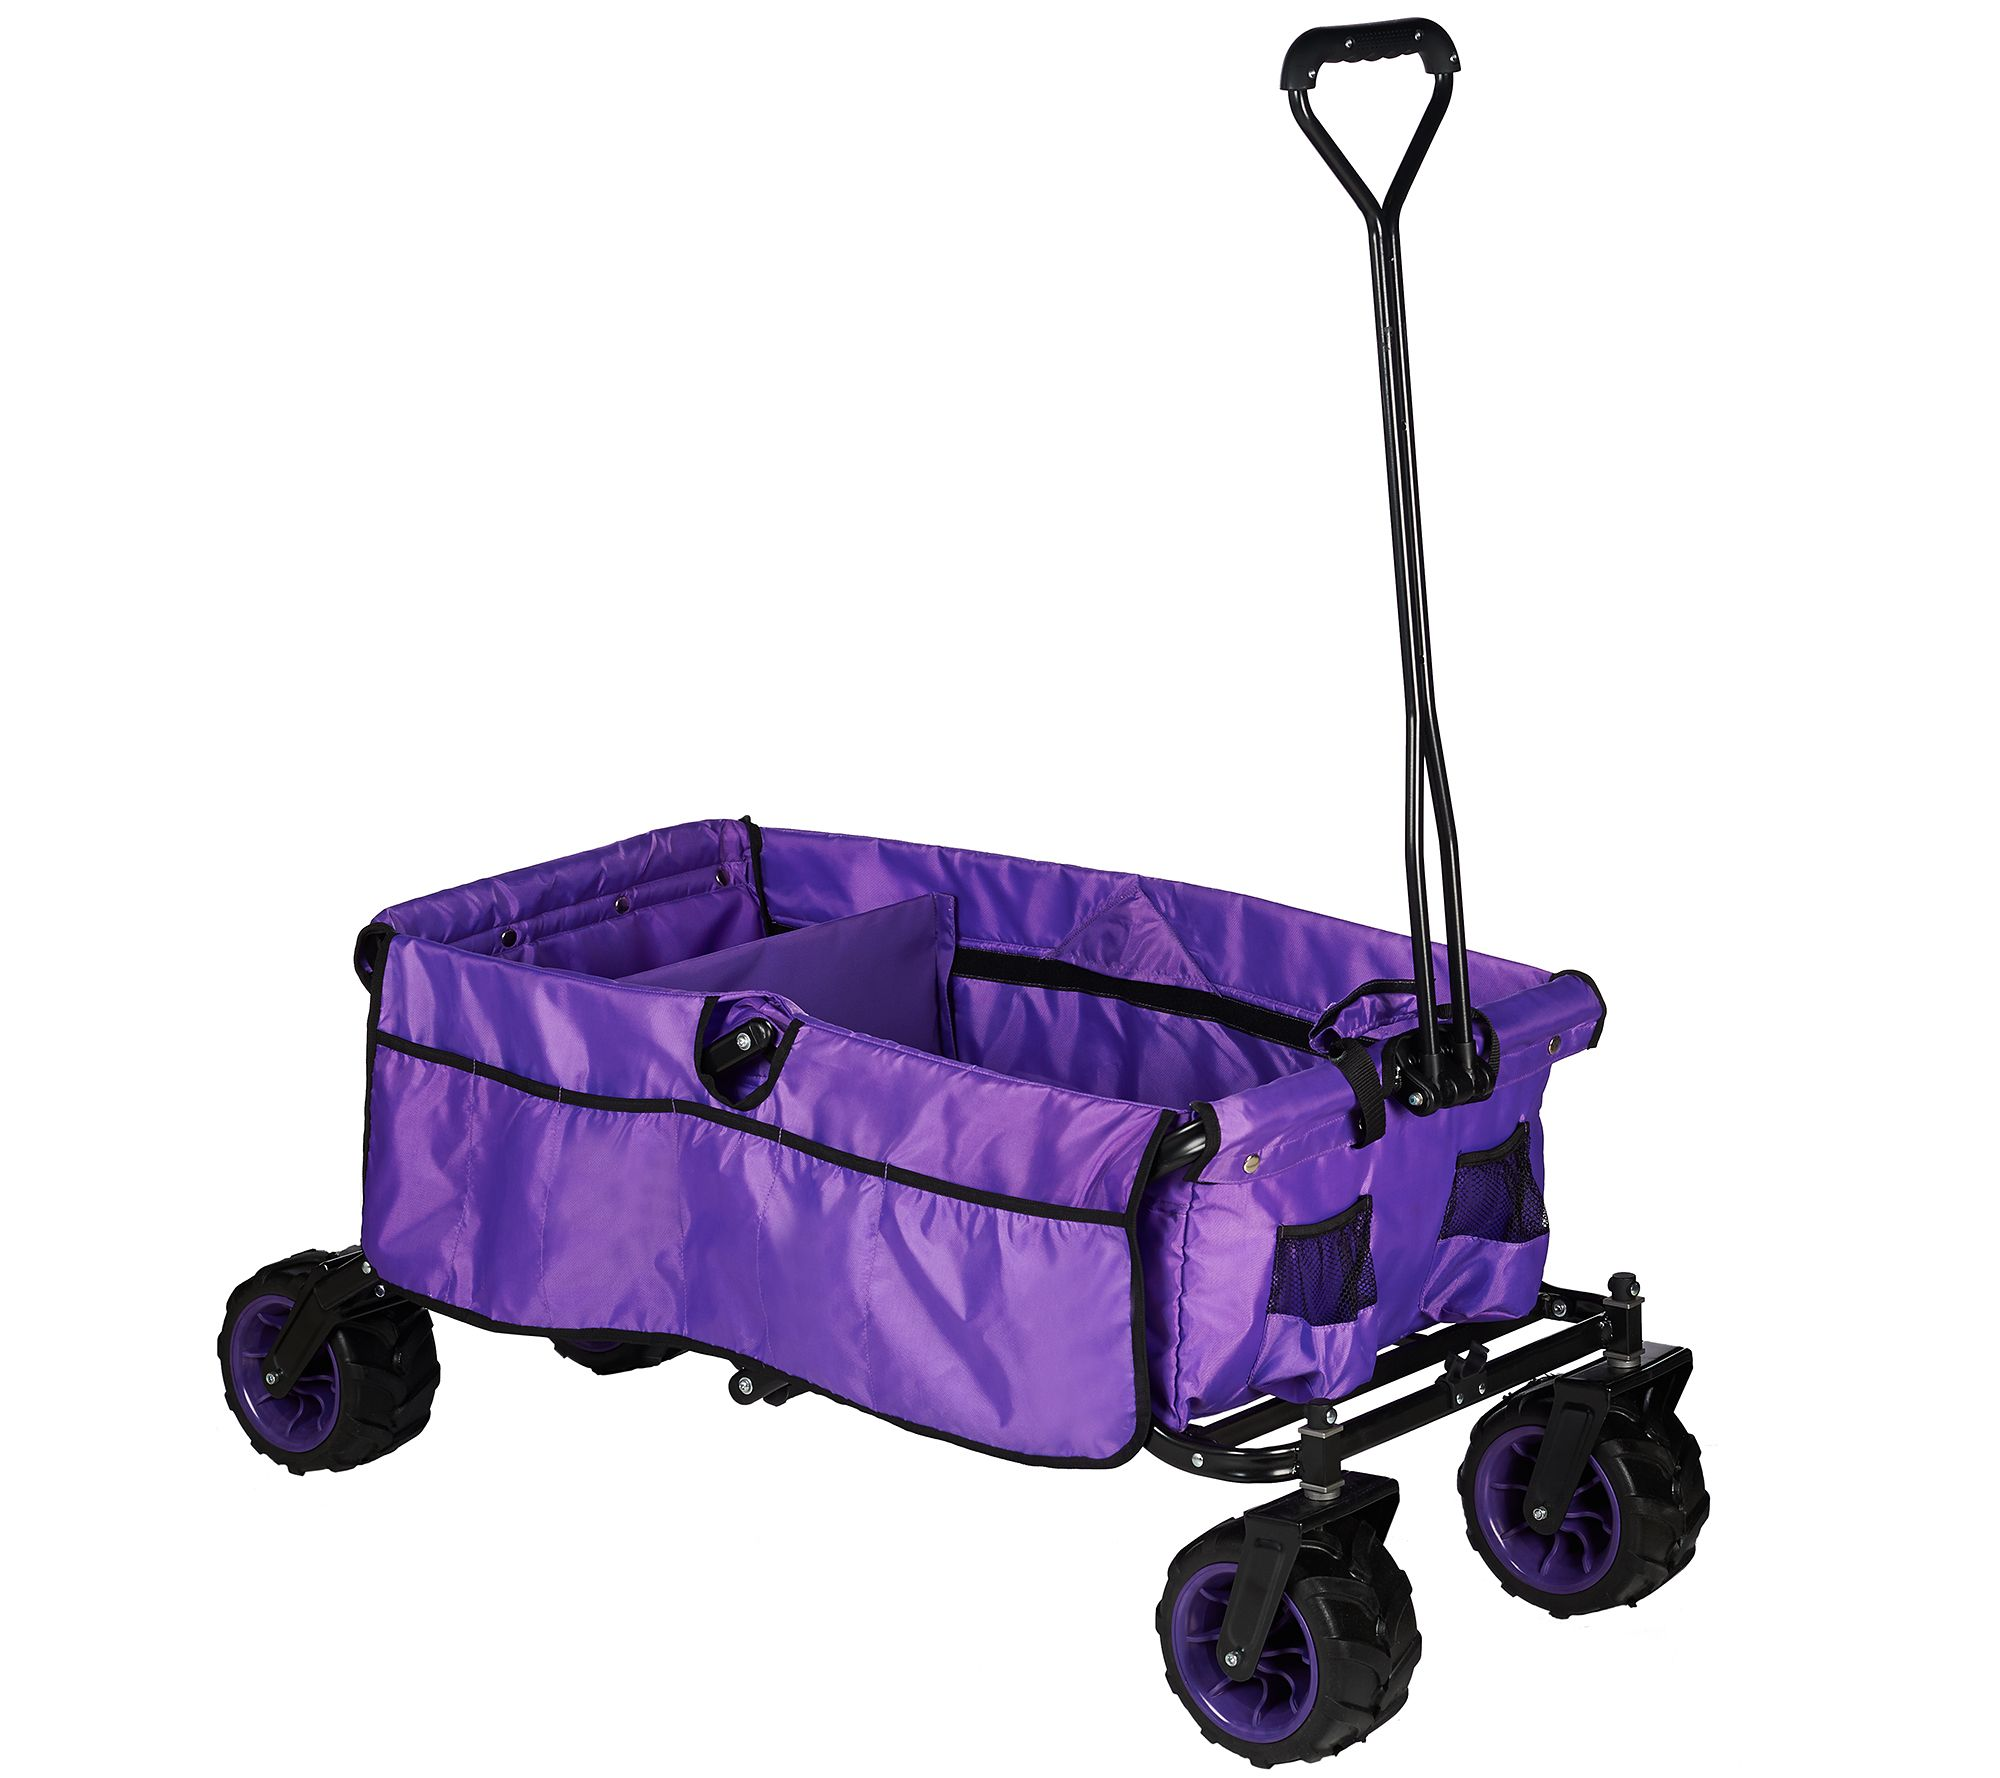 Creative Outdoors All-Terrain Folding Wagon with Divider - M48802